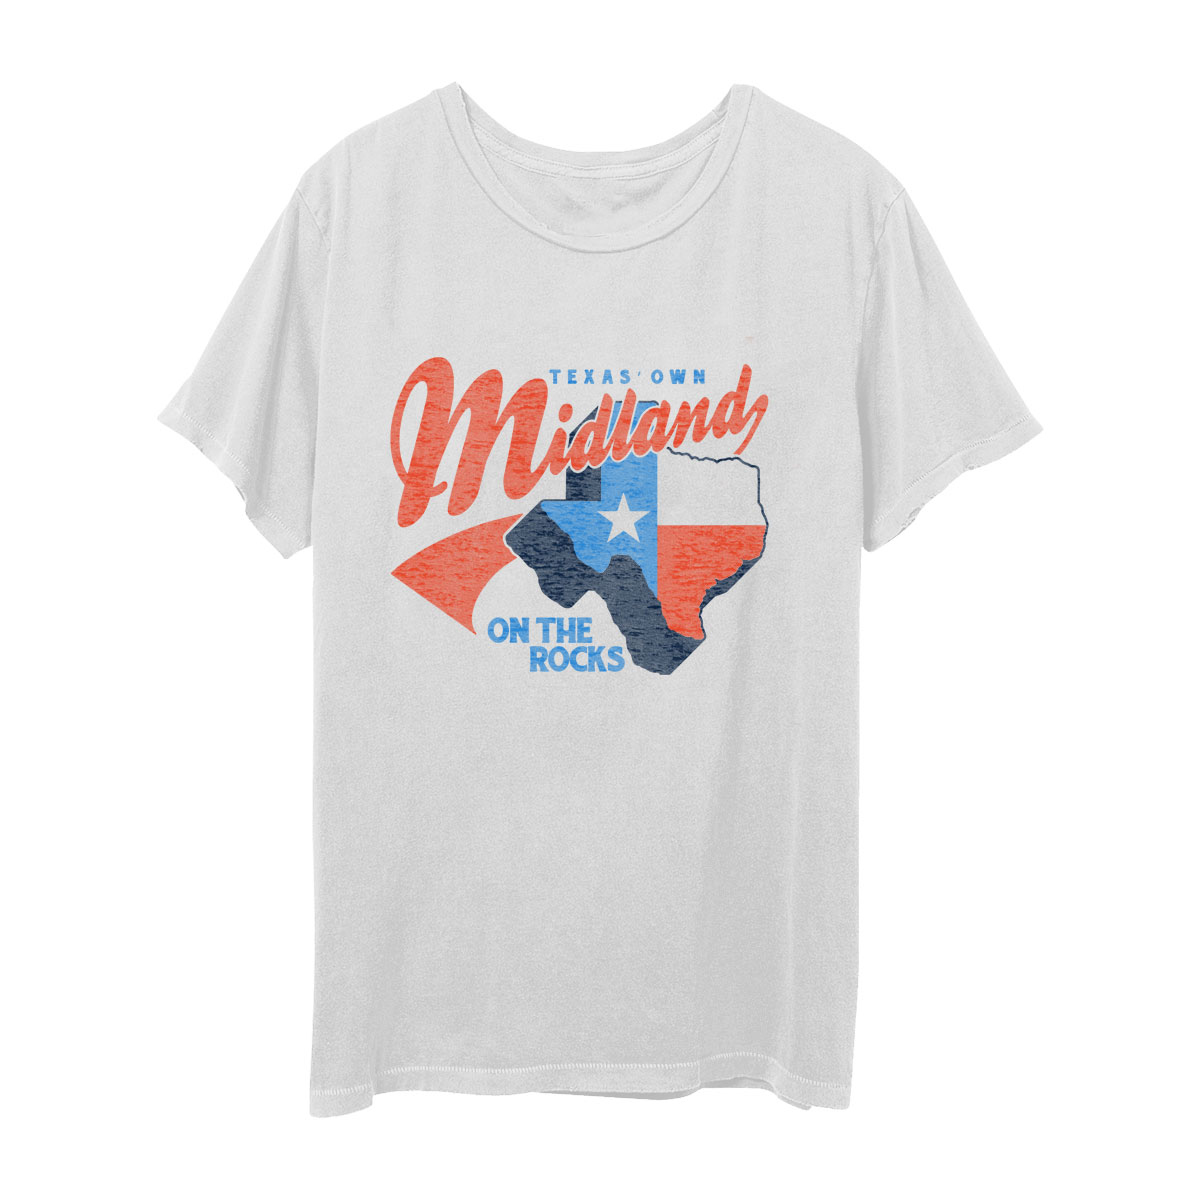 Midland Texas On the Rocks White T-Shirt